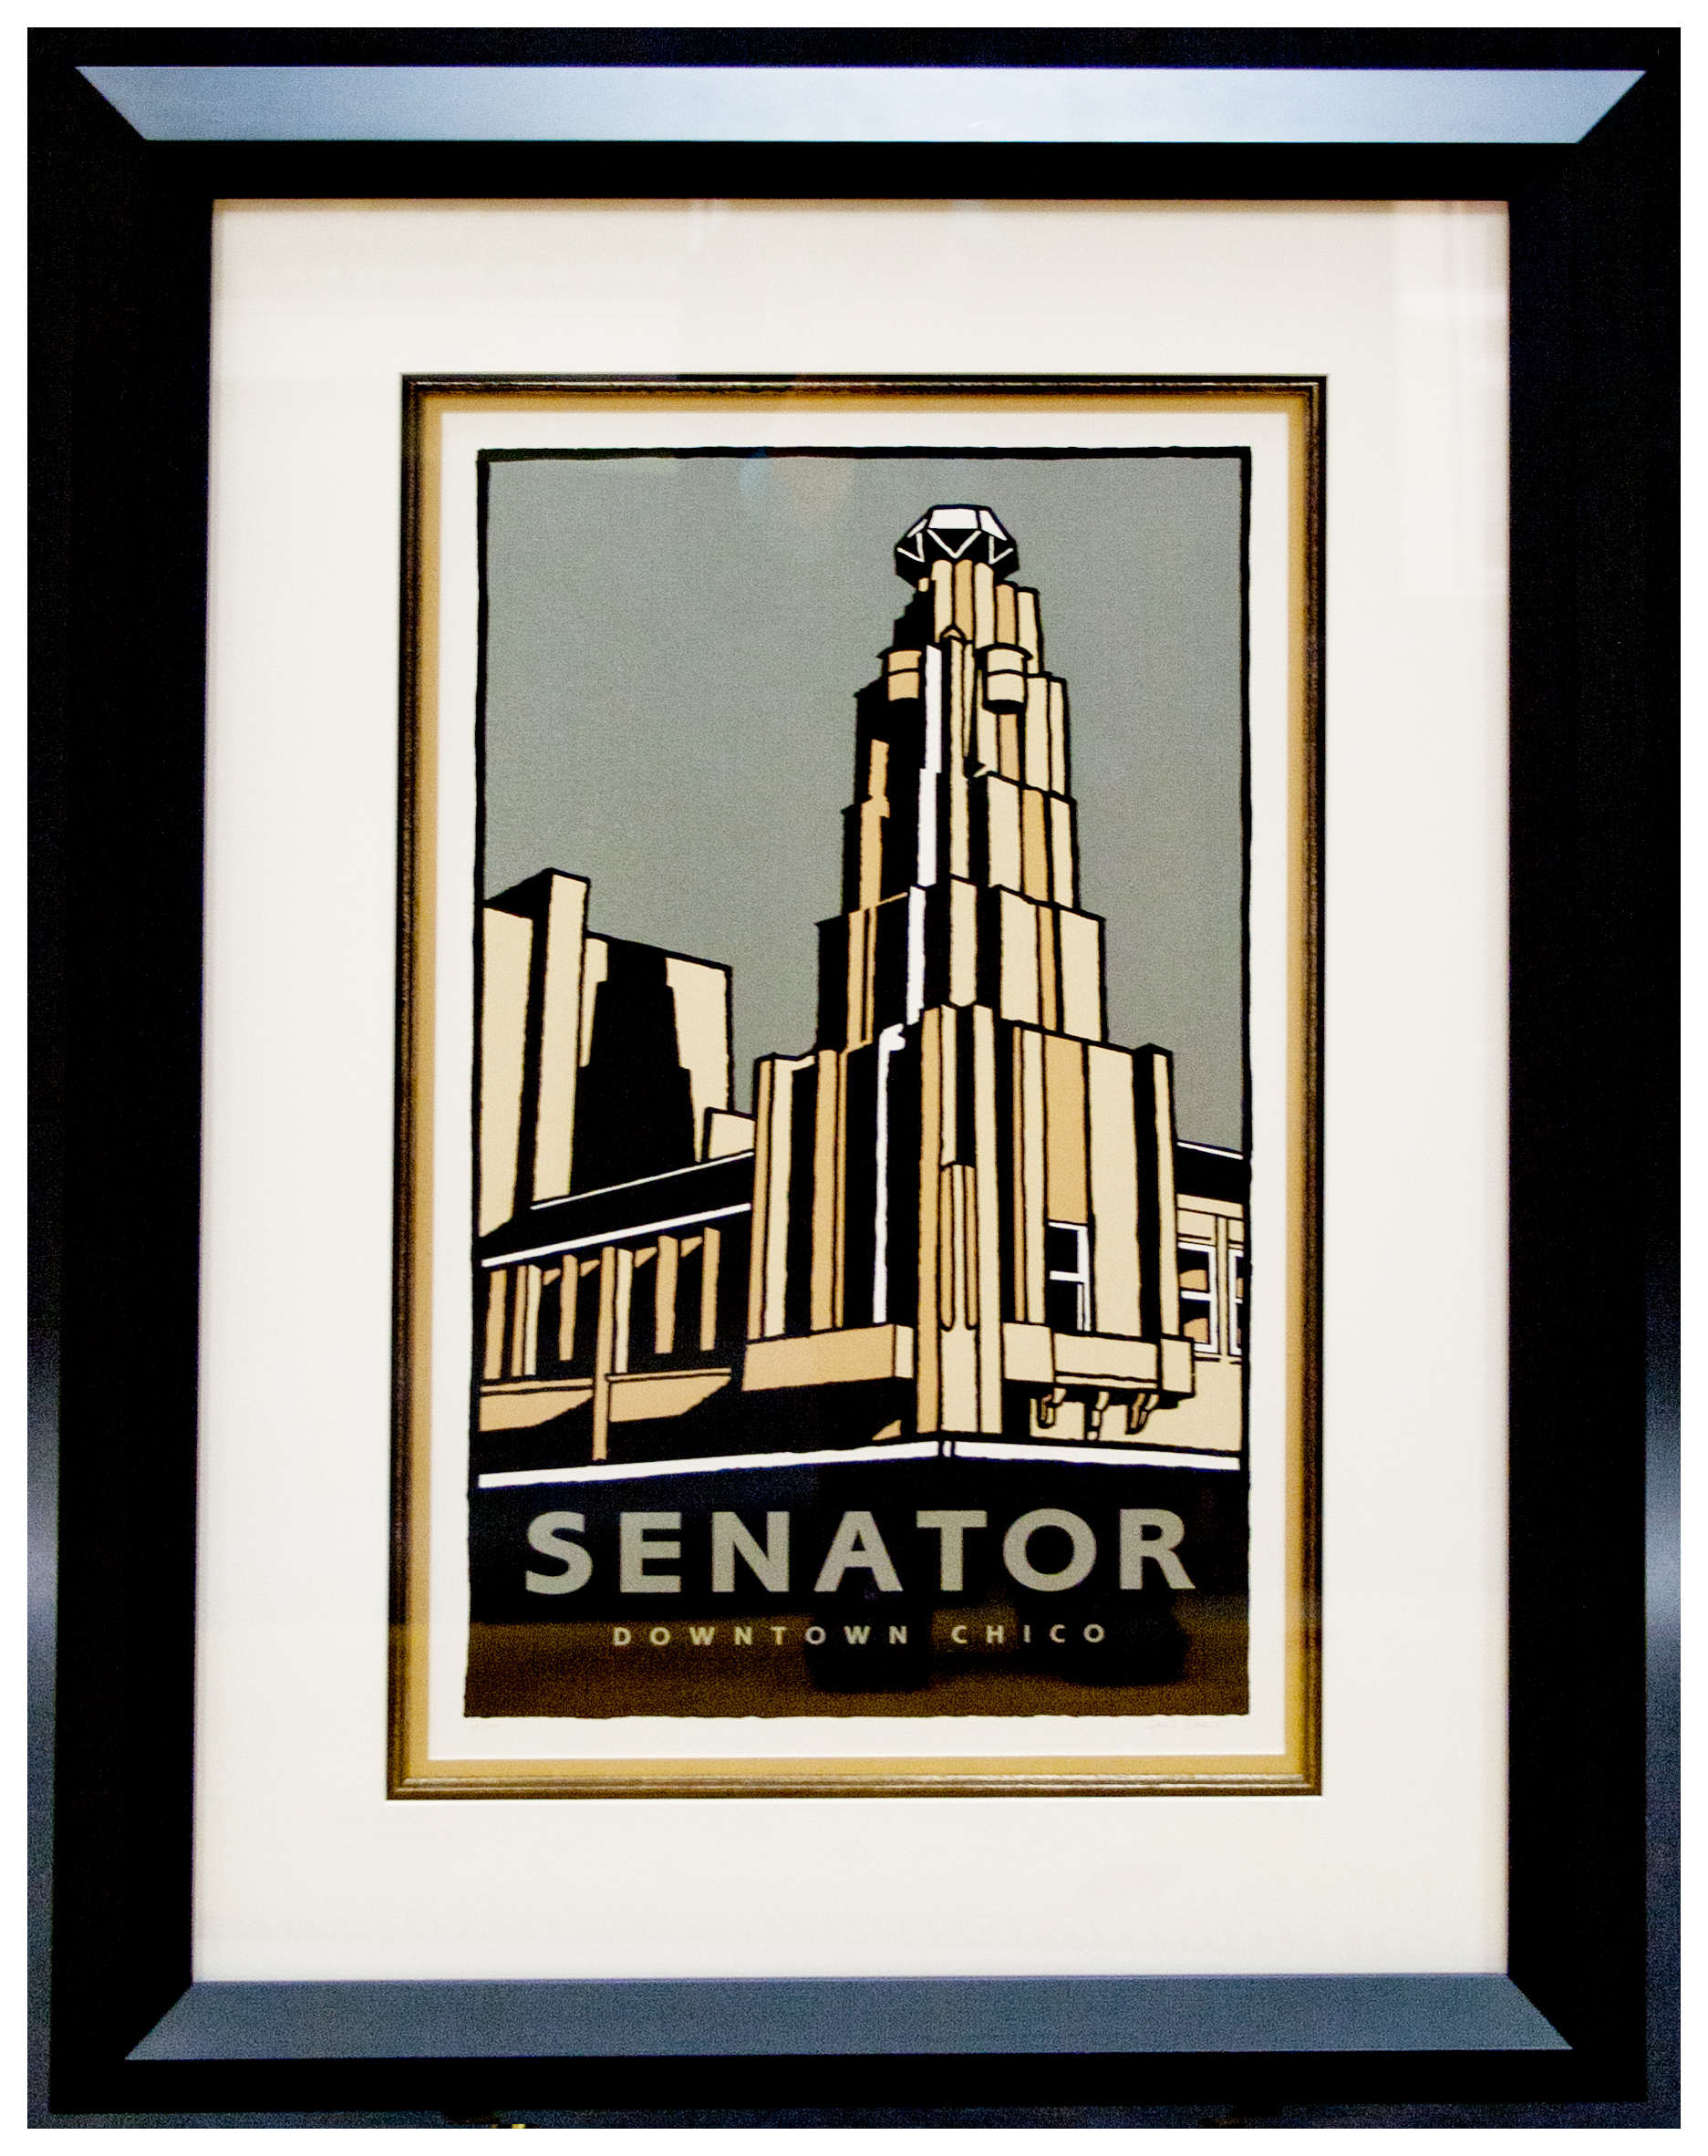 Senator Framed Secondary Market Print